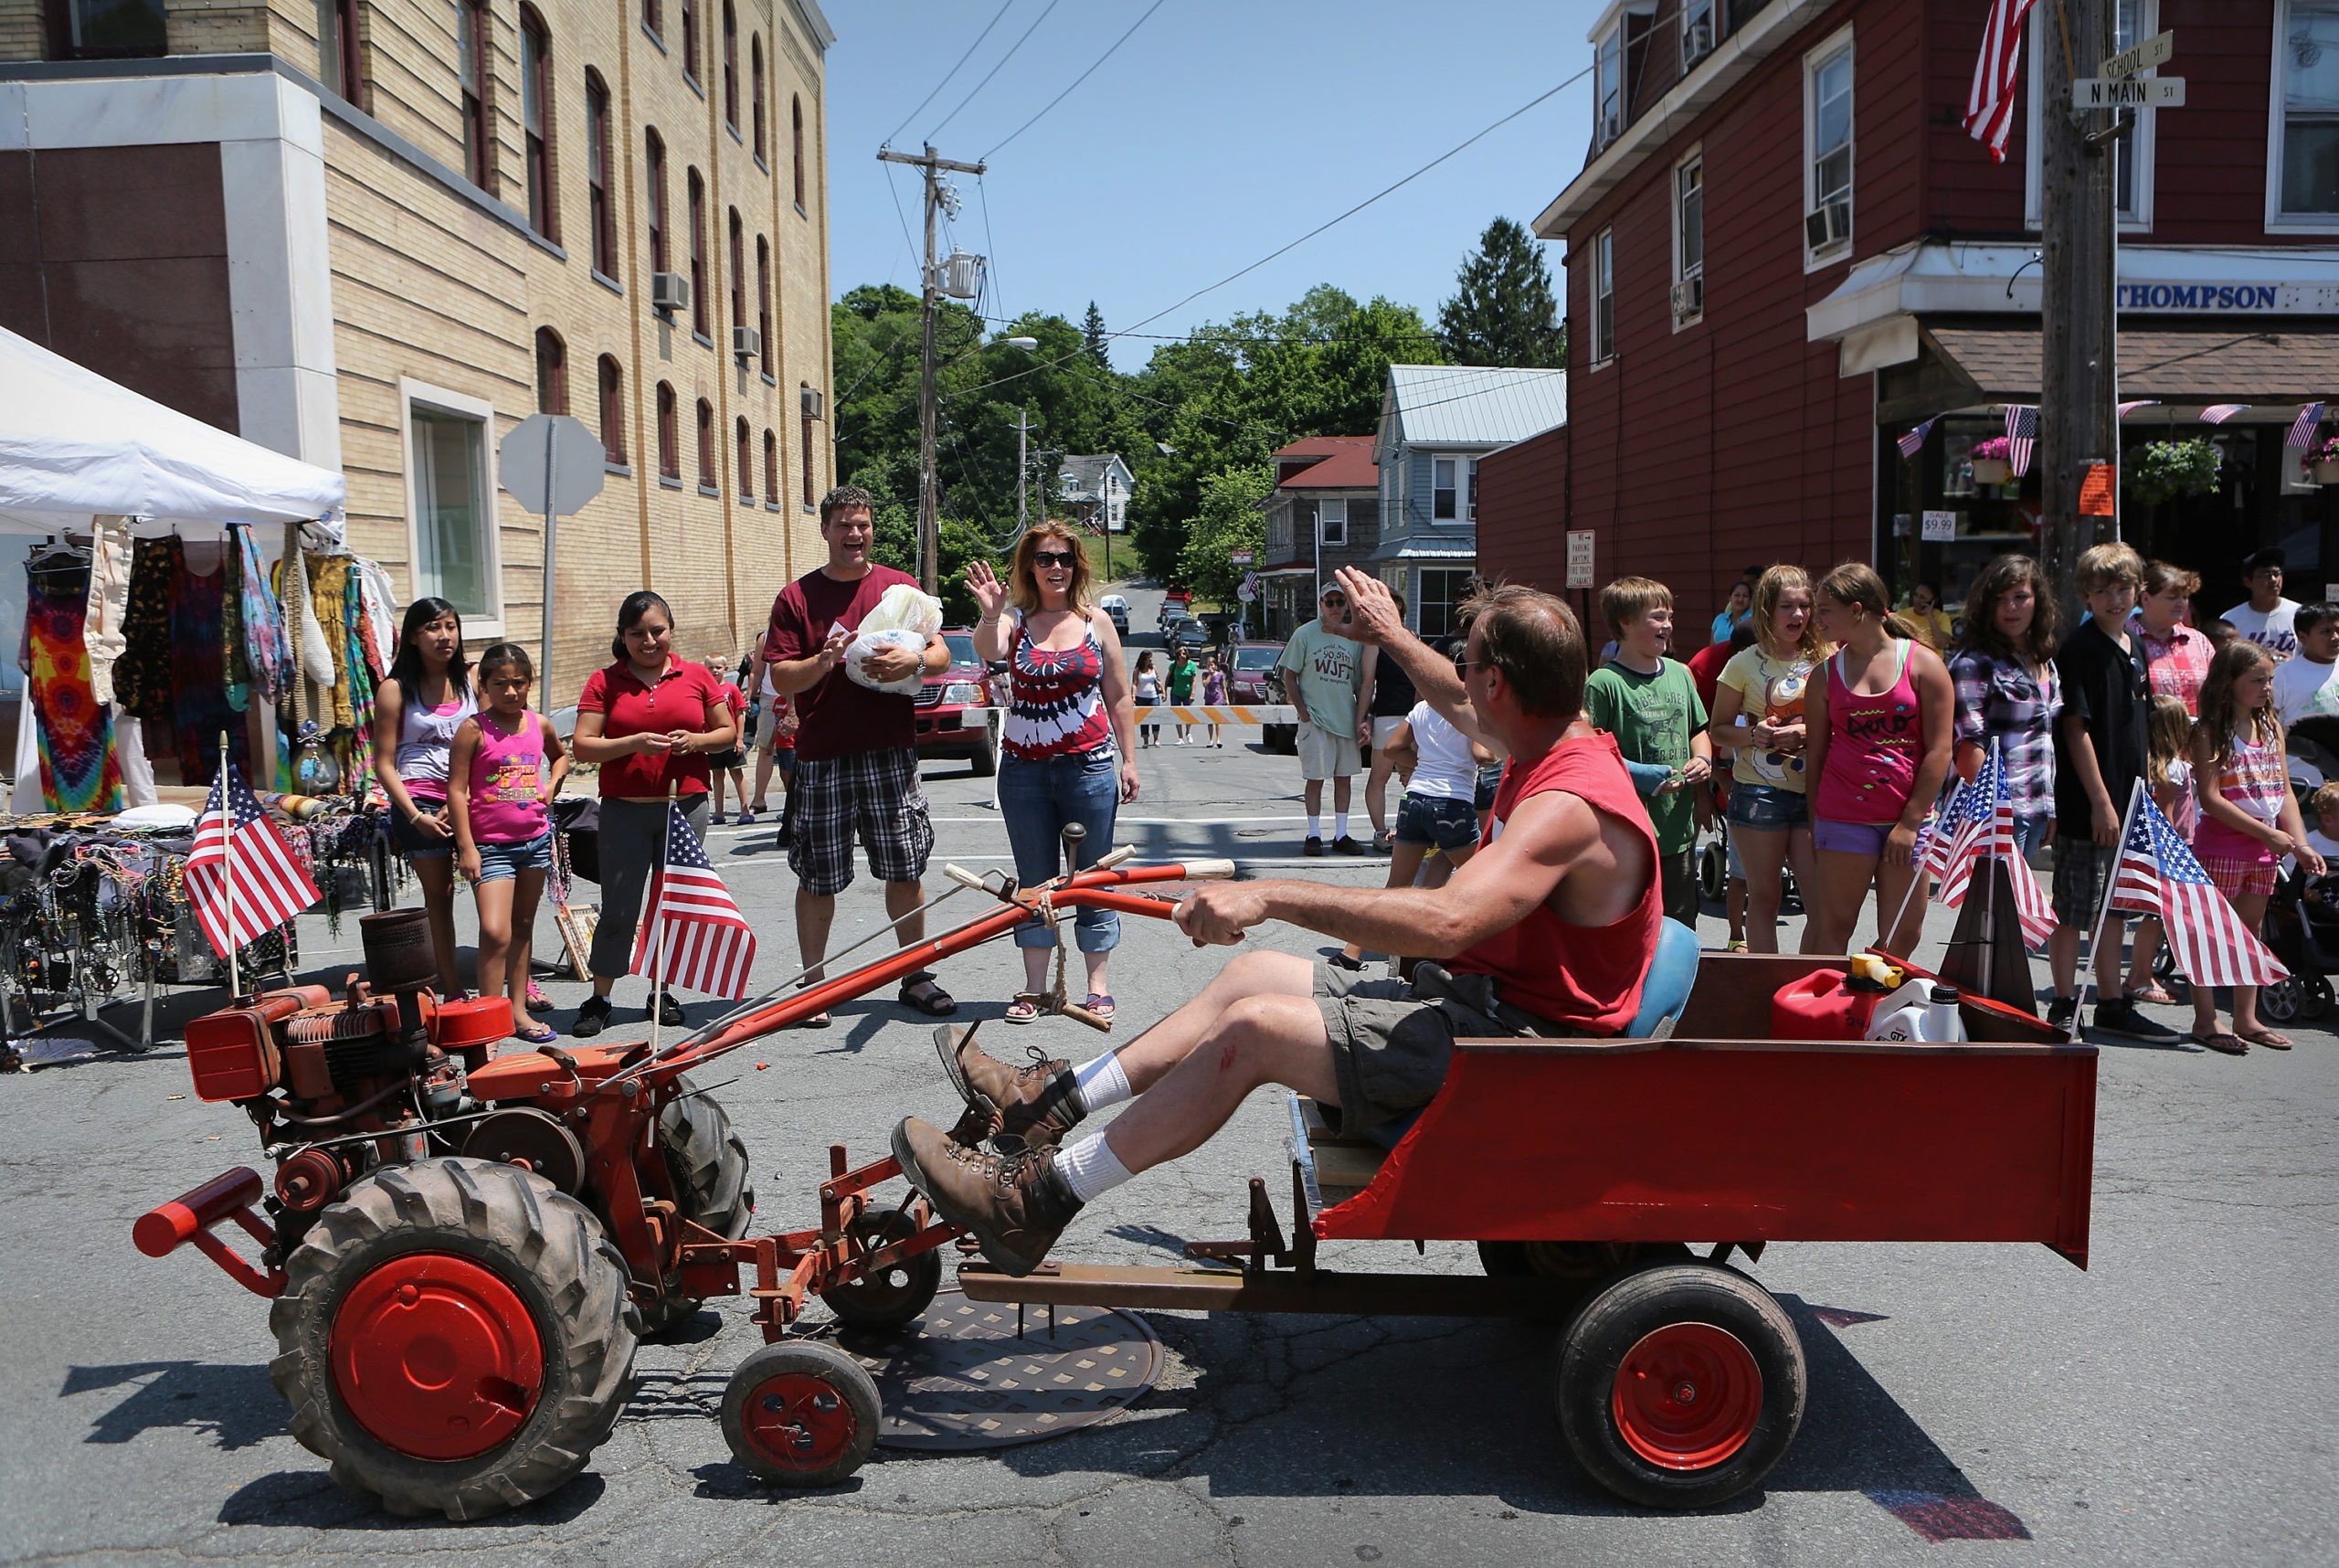 Residents watch a 4th of July parade during the Liberty Festival on July 4, 2012 in Liberty, New York. Communities around the country celebrated Independence Day with parades and shows of patriotism. (Photo by John Moore/Getty Images)